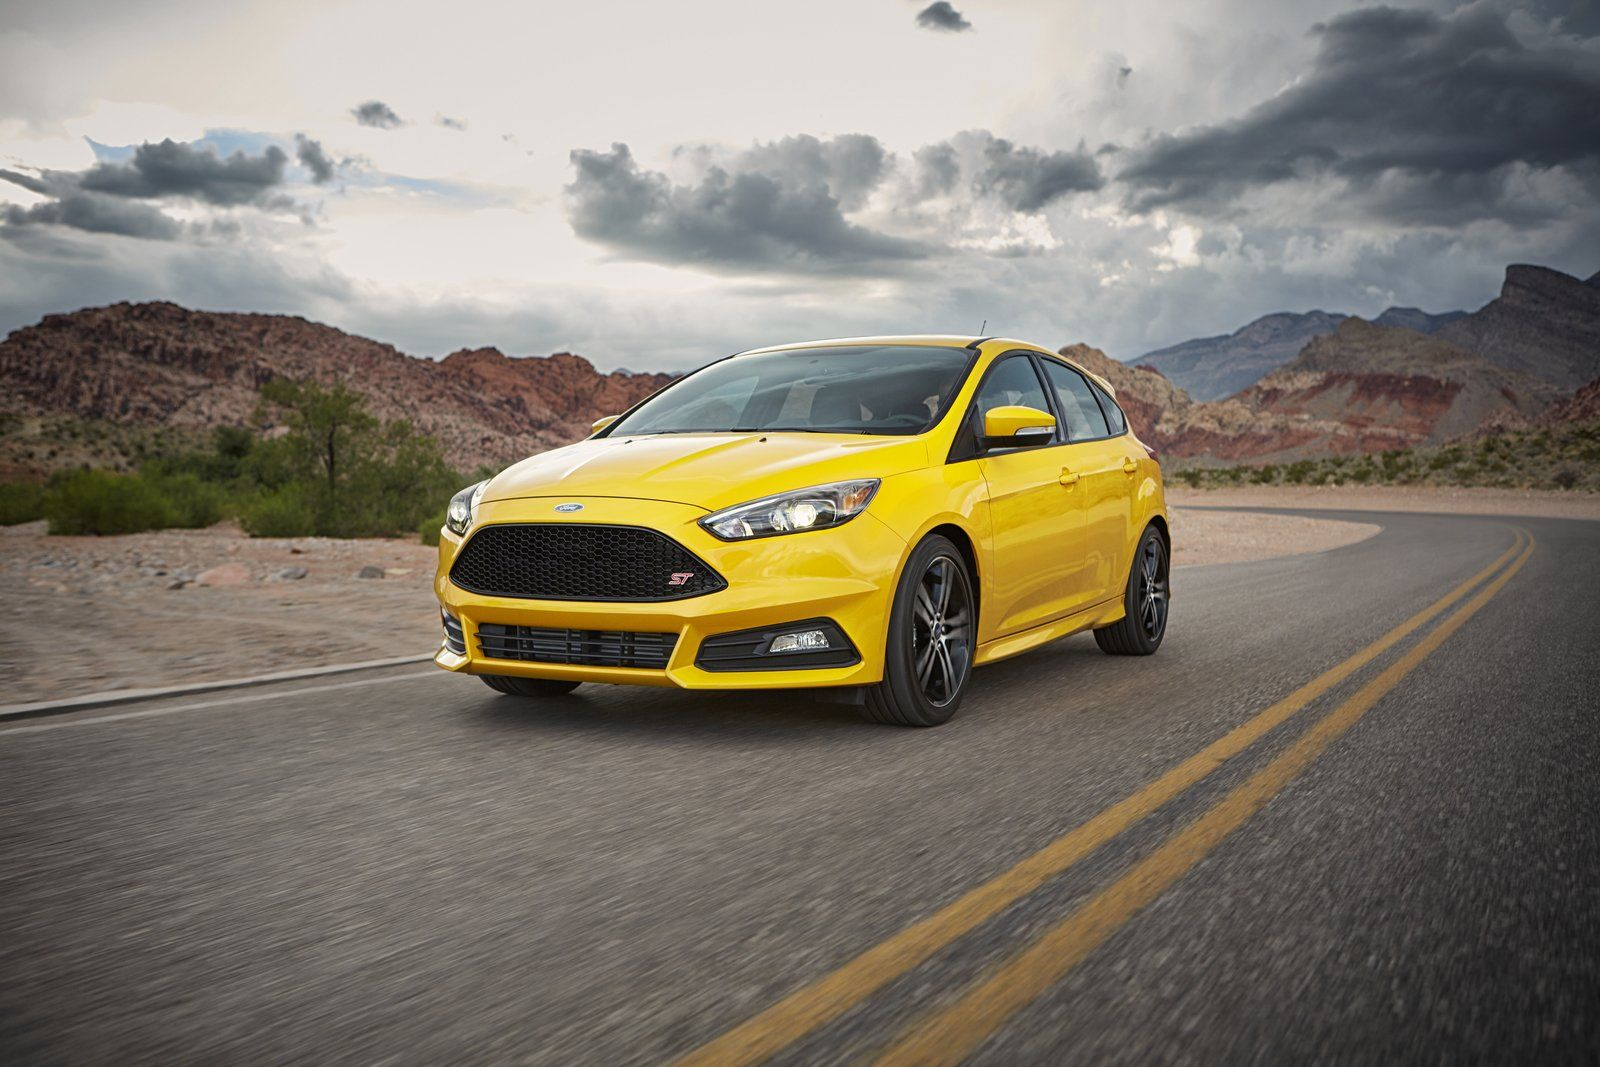 Ford S High Performance Lineup Is Attracting Young And Wealthy Buyers Ford Ford Focus New Ford Focus Ford Models